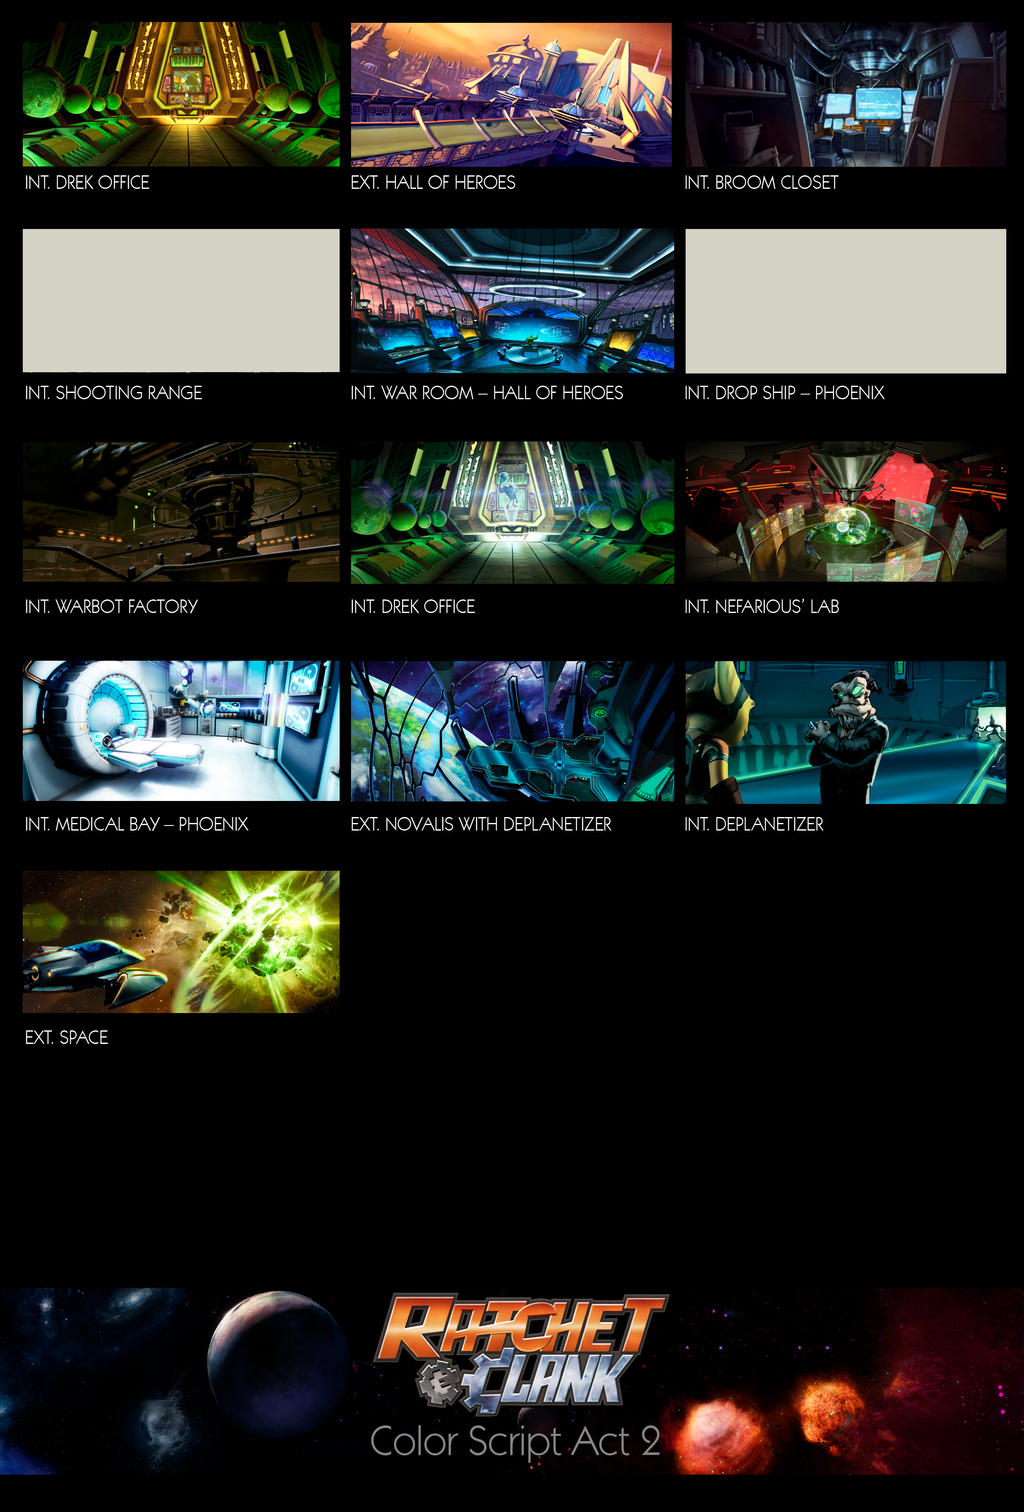 ratchet and clank act 2 color script by tonywash on deviantart